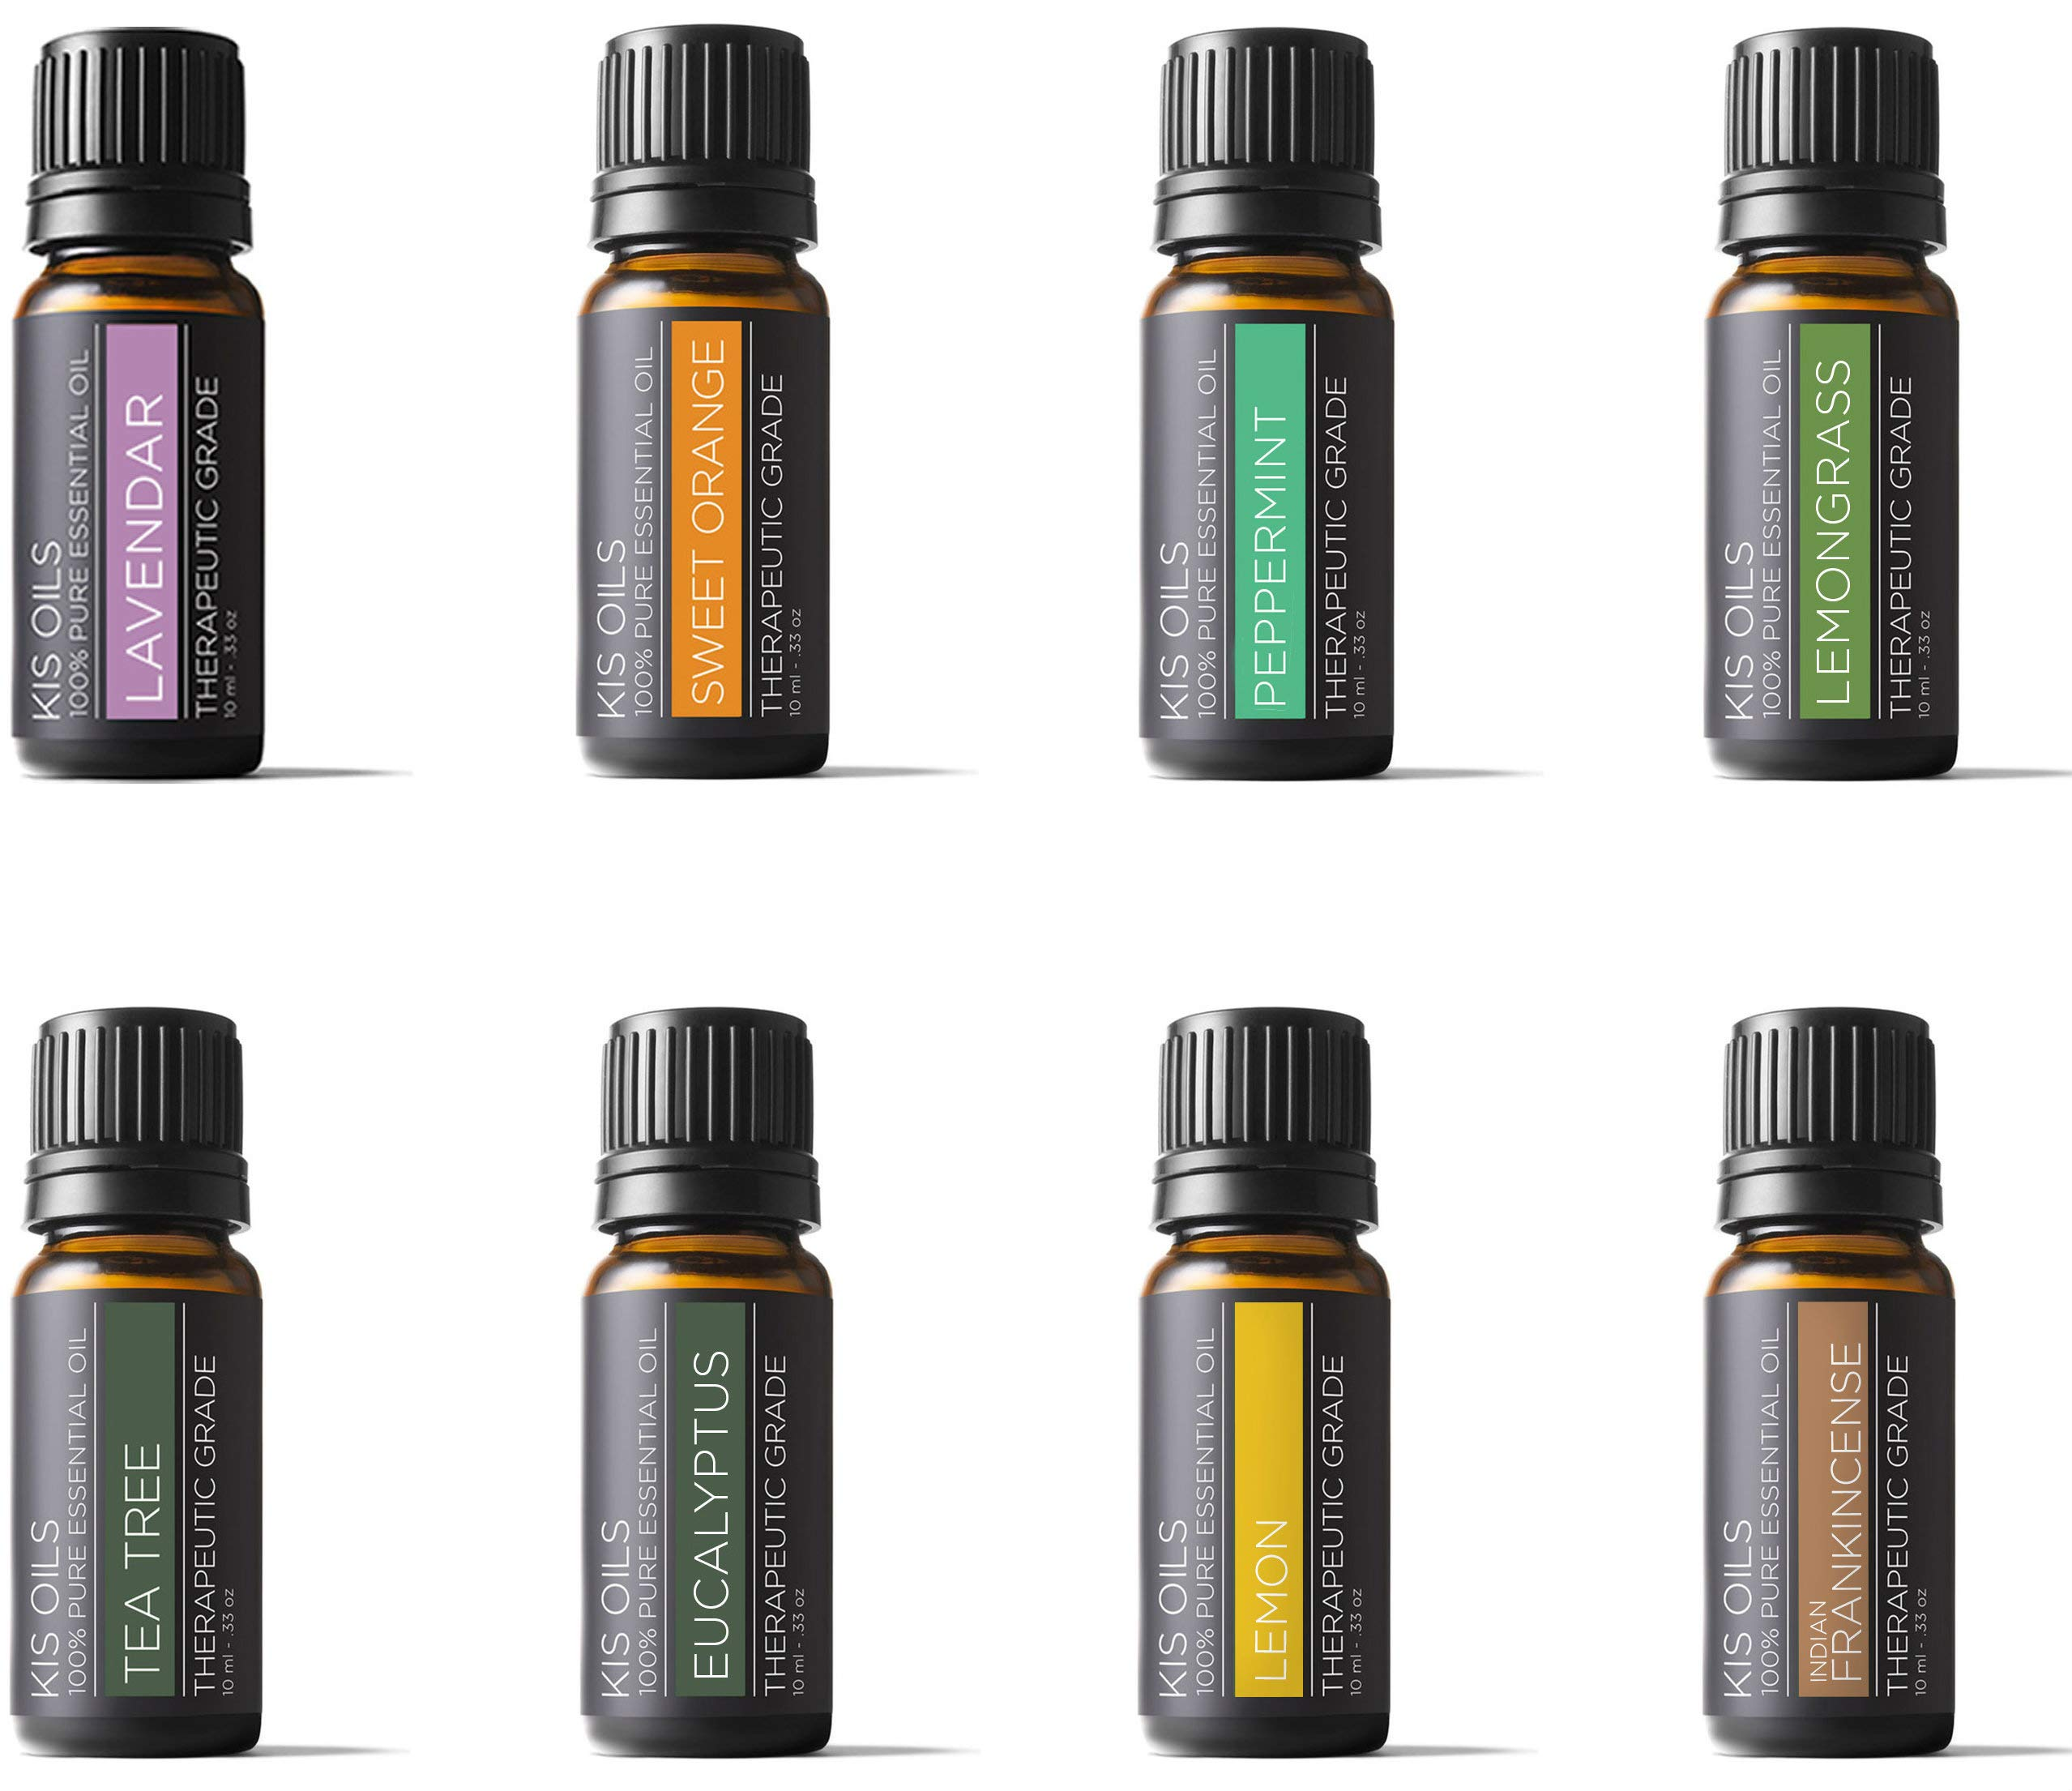 Aromatherapy Top 8 100% Pure Therapeutic Grade Basic Sampler essential oil gift set 8/10ml (lavender, sweet orange, peppermint, lemongrass, tea tree, eucalyptus, lemon, frankincense)